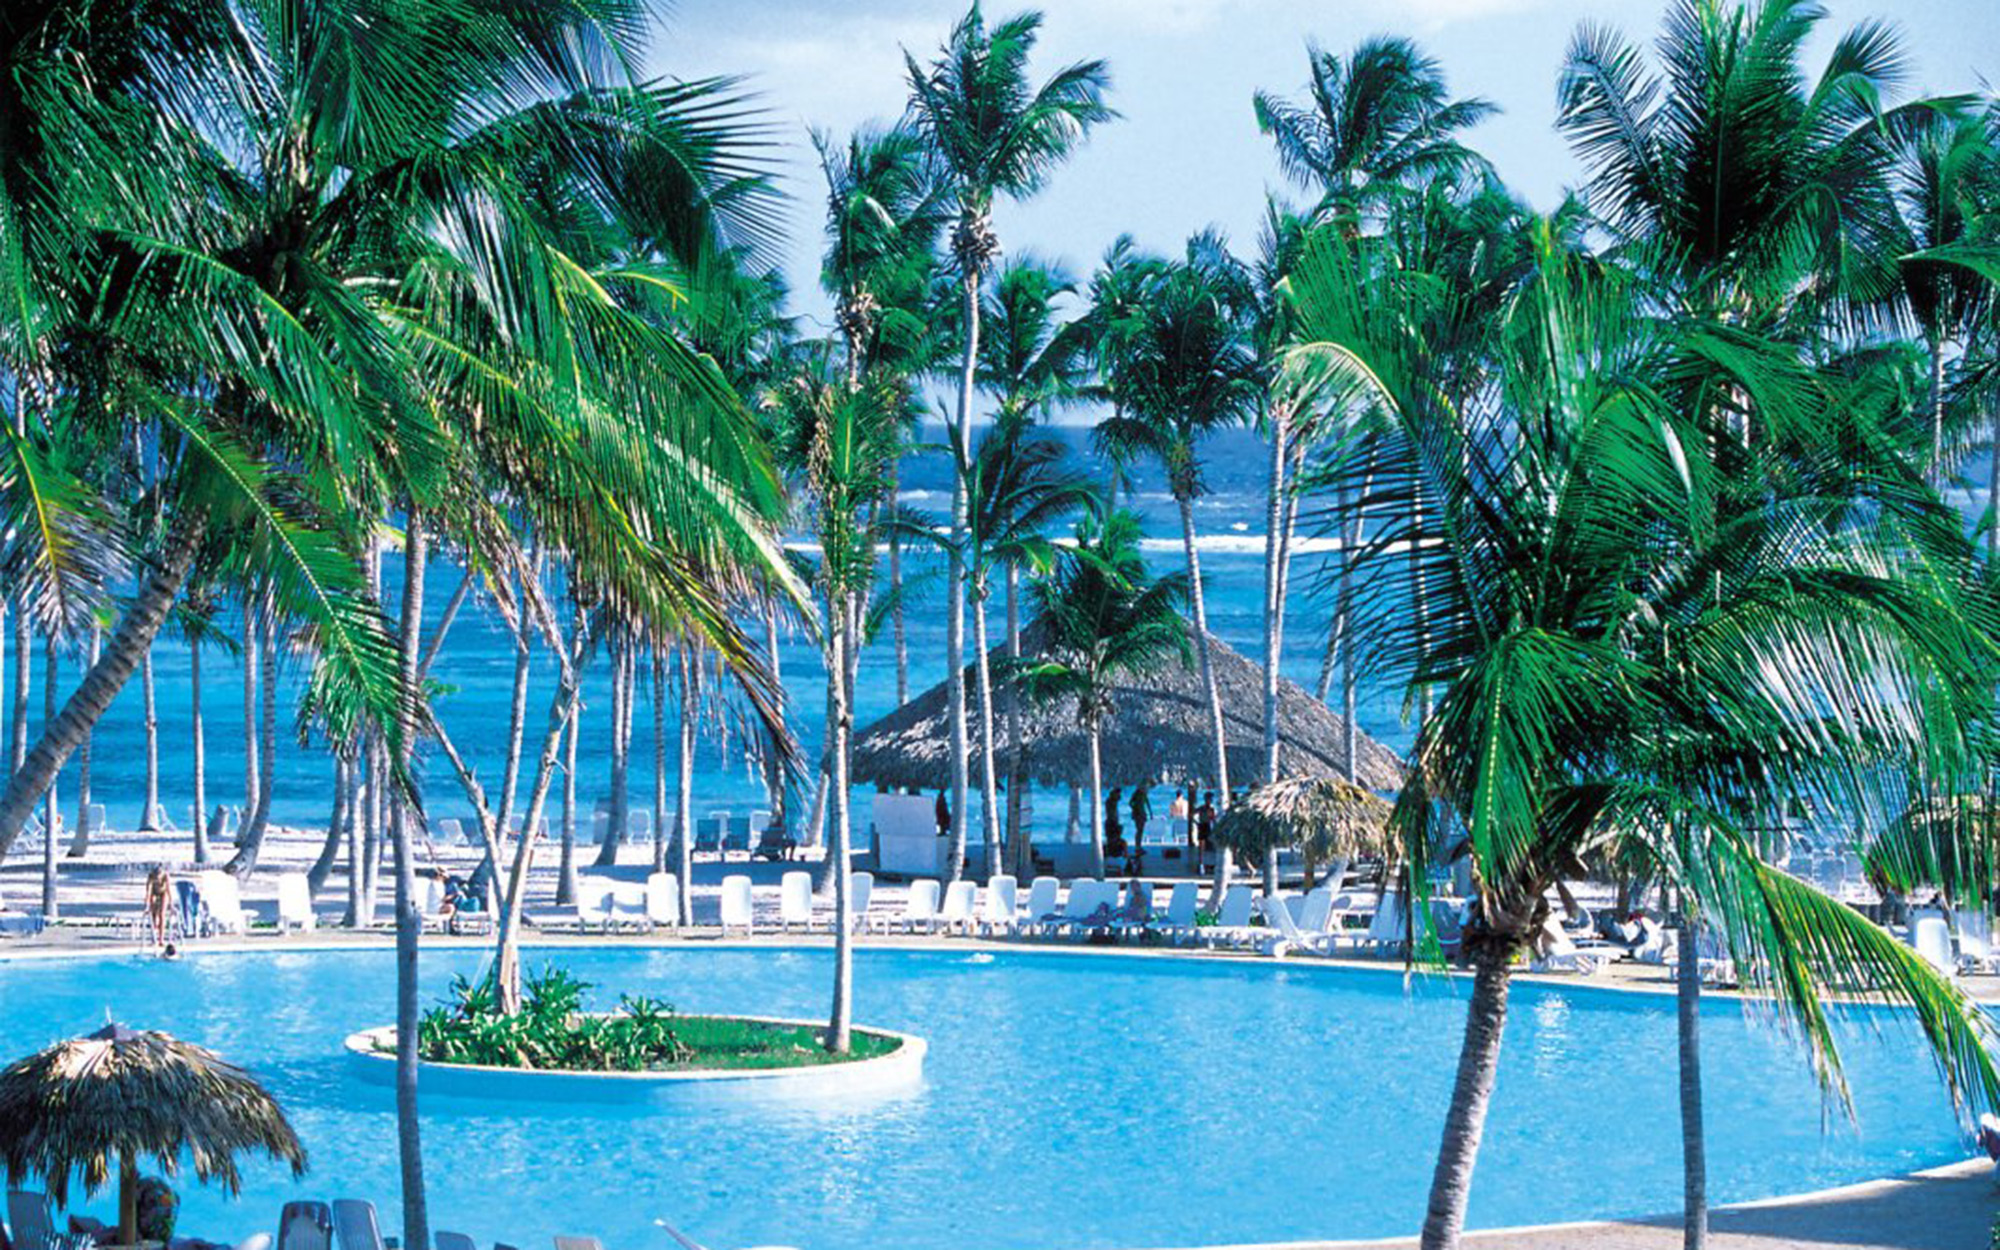 Caribbean Group Getaways: Club Med Punta Cana, D.R.